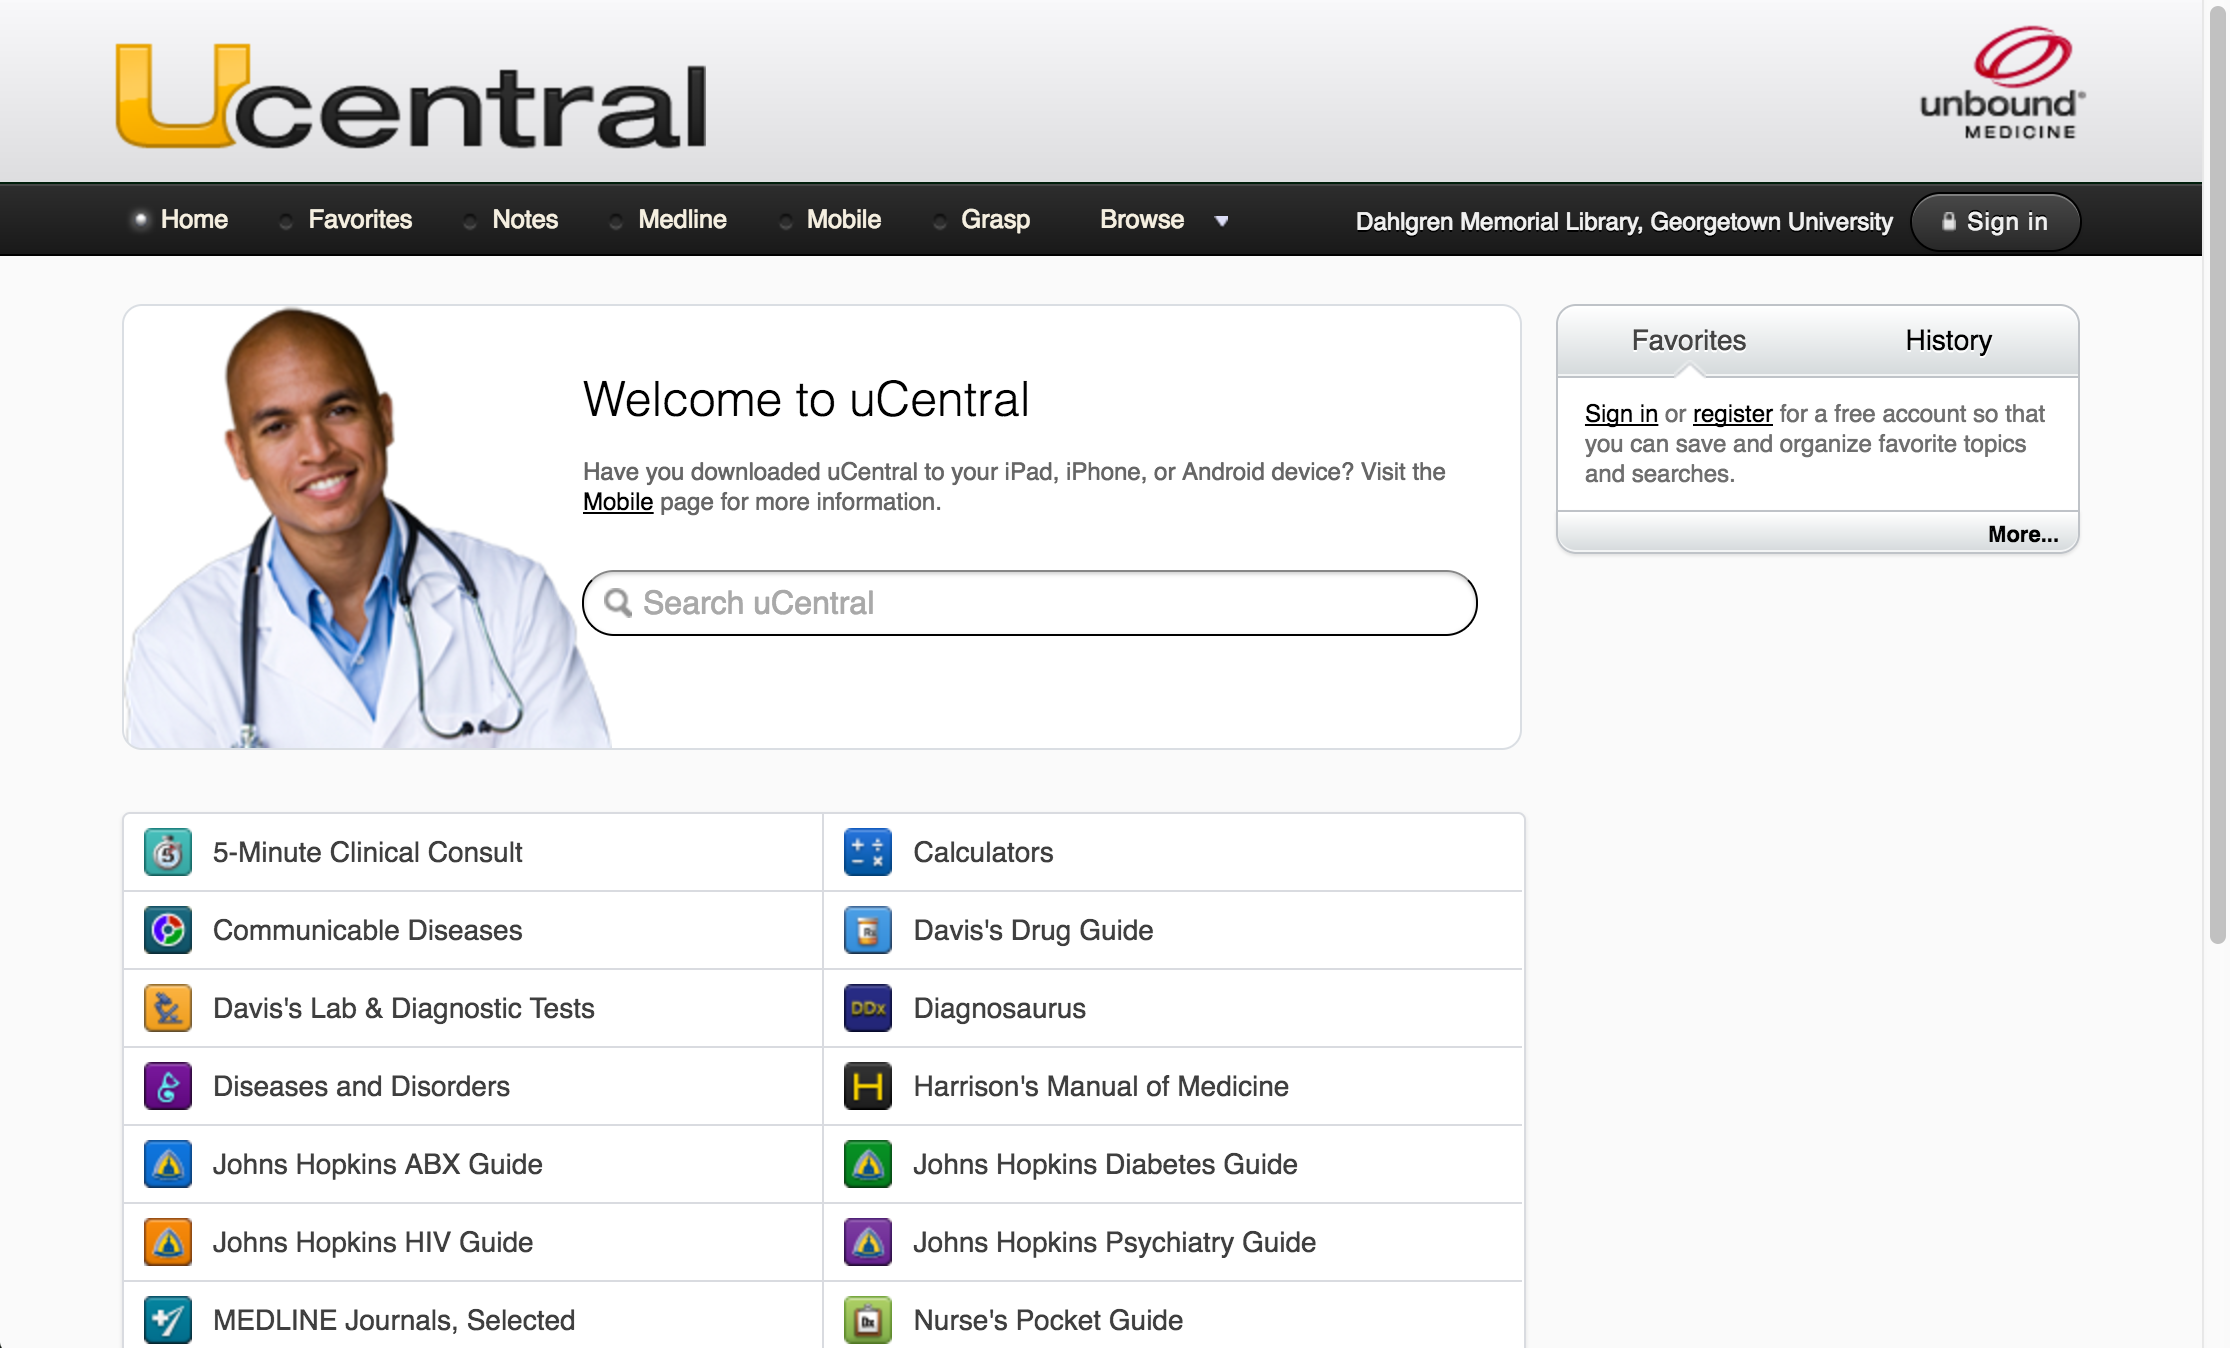 Website of uCentral